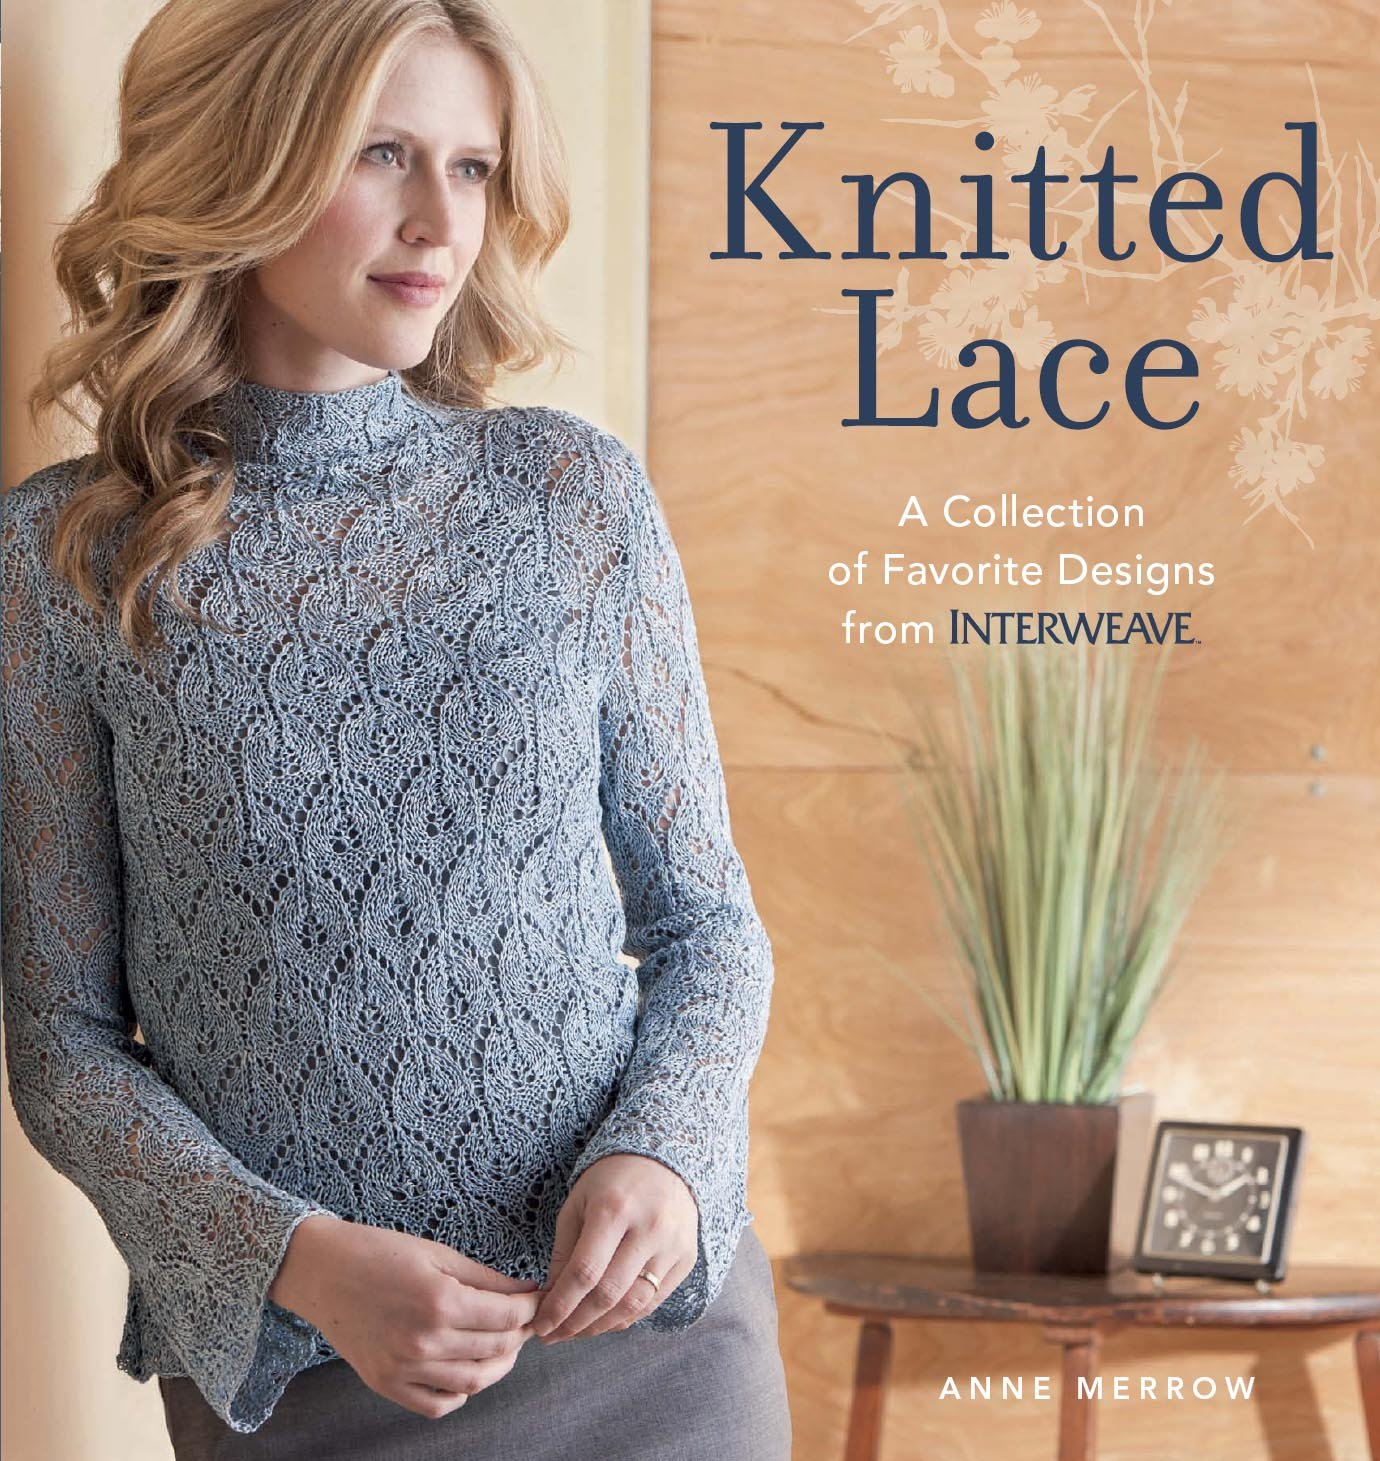 Knitted Lace A Collection Of Favorite Designs From Interweave Anne